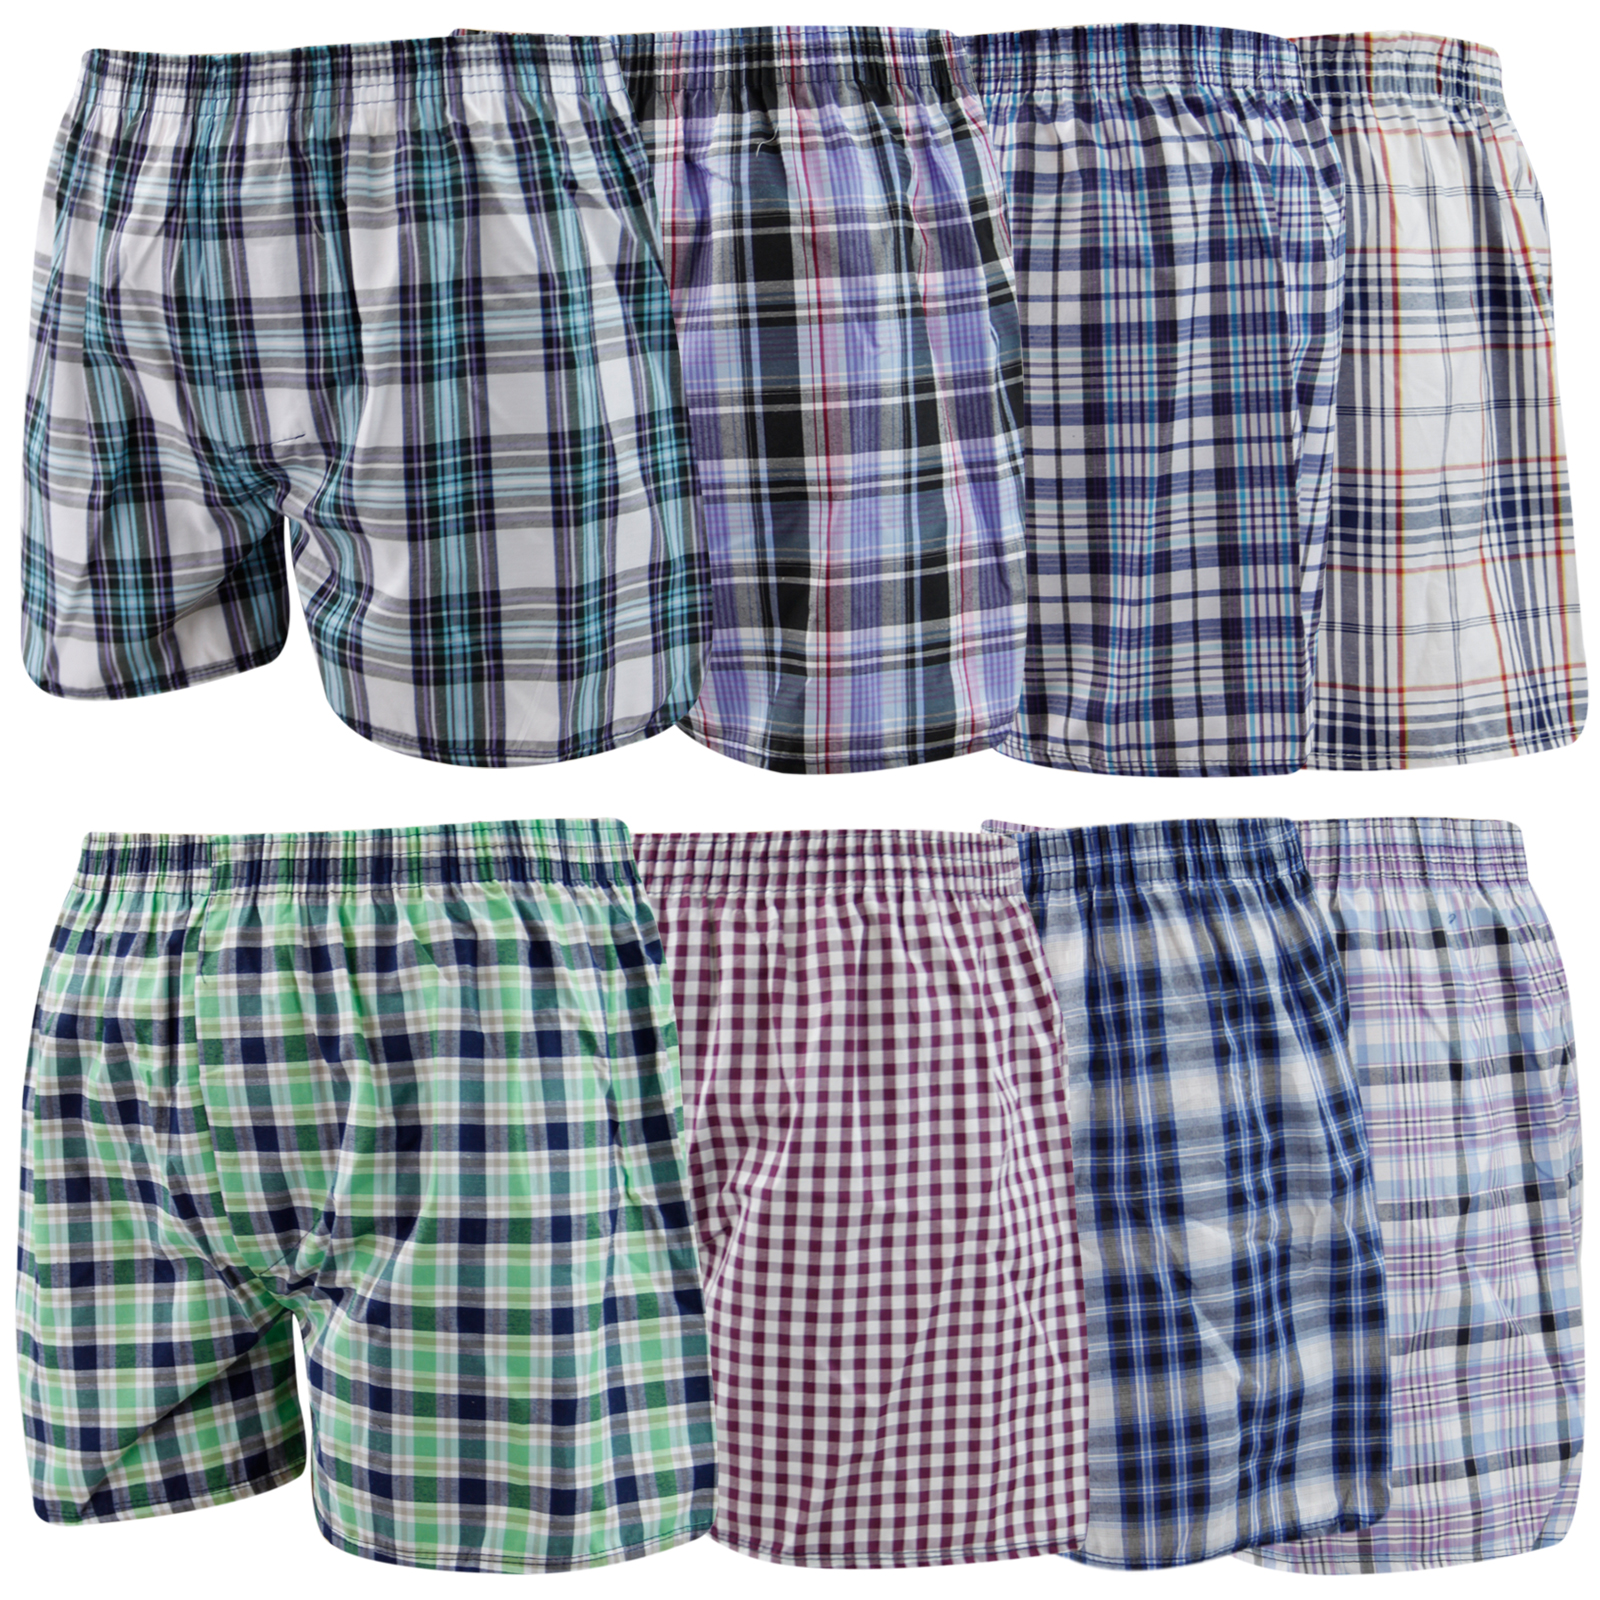 6 Pack Mens Woven Check Print Poly Cotton Boxer Shorts ...